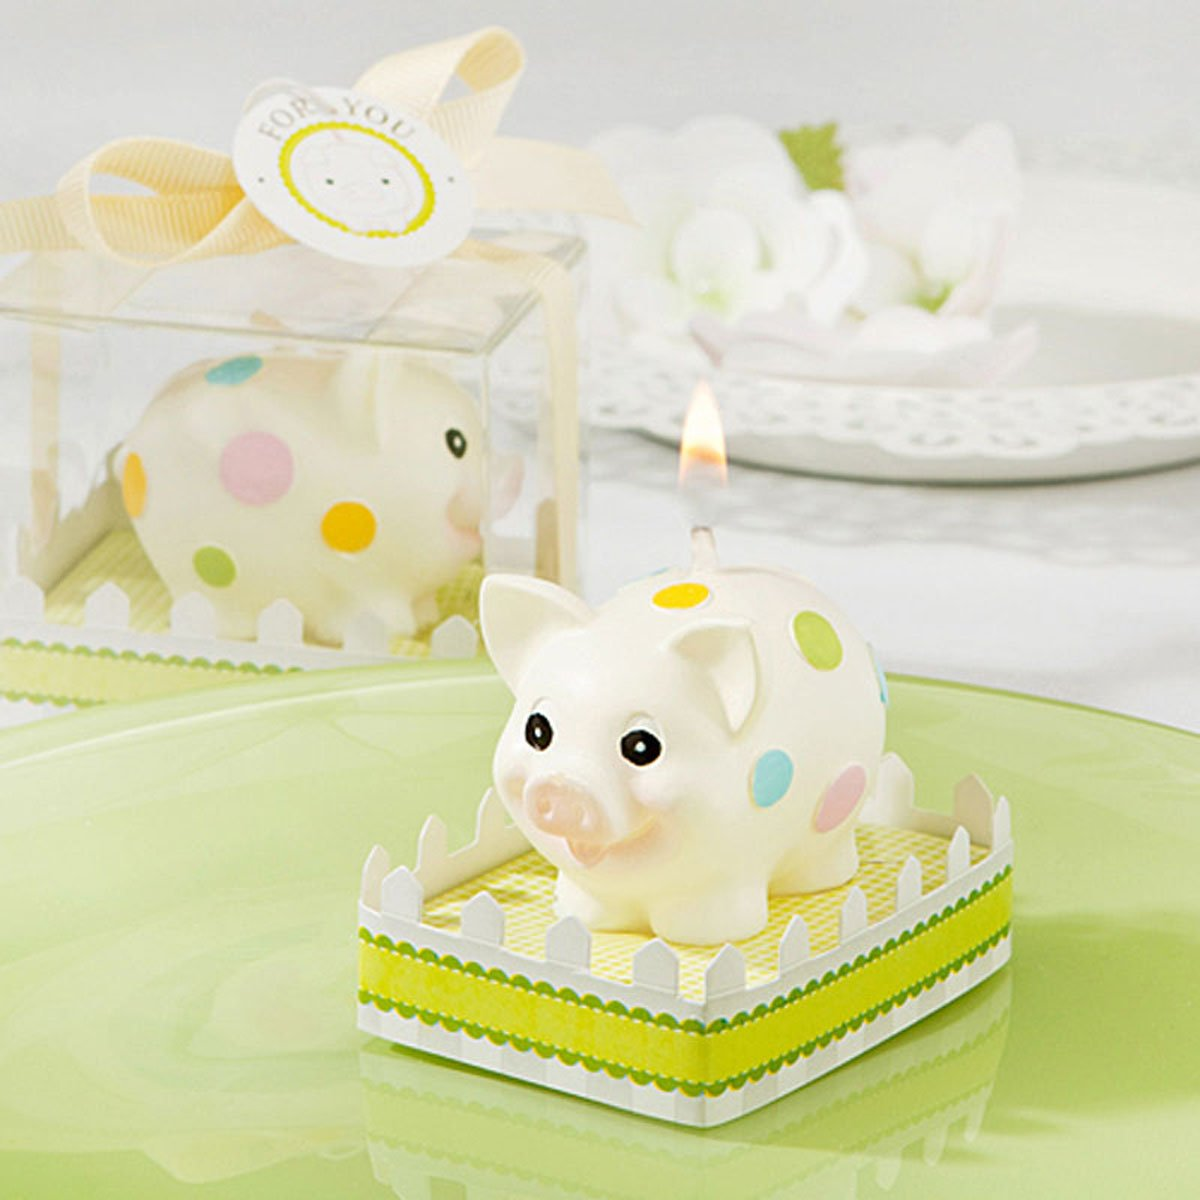 Cartoon Zodiac Pig Charming Gifts Party Candles Smokeless Candles Birthday Candles for Baby Shower and Wedding Favor Keepsake Favor (10)